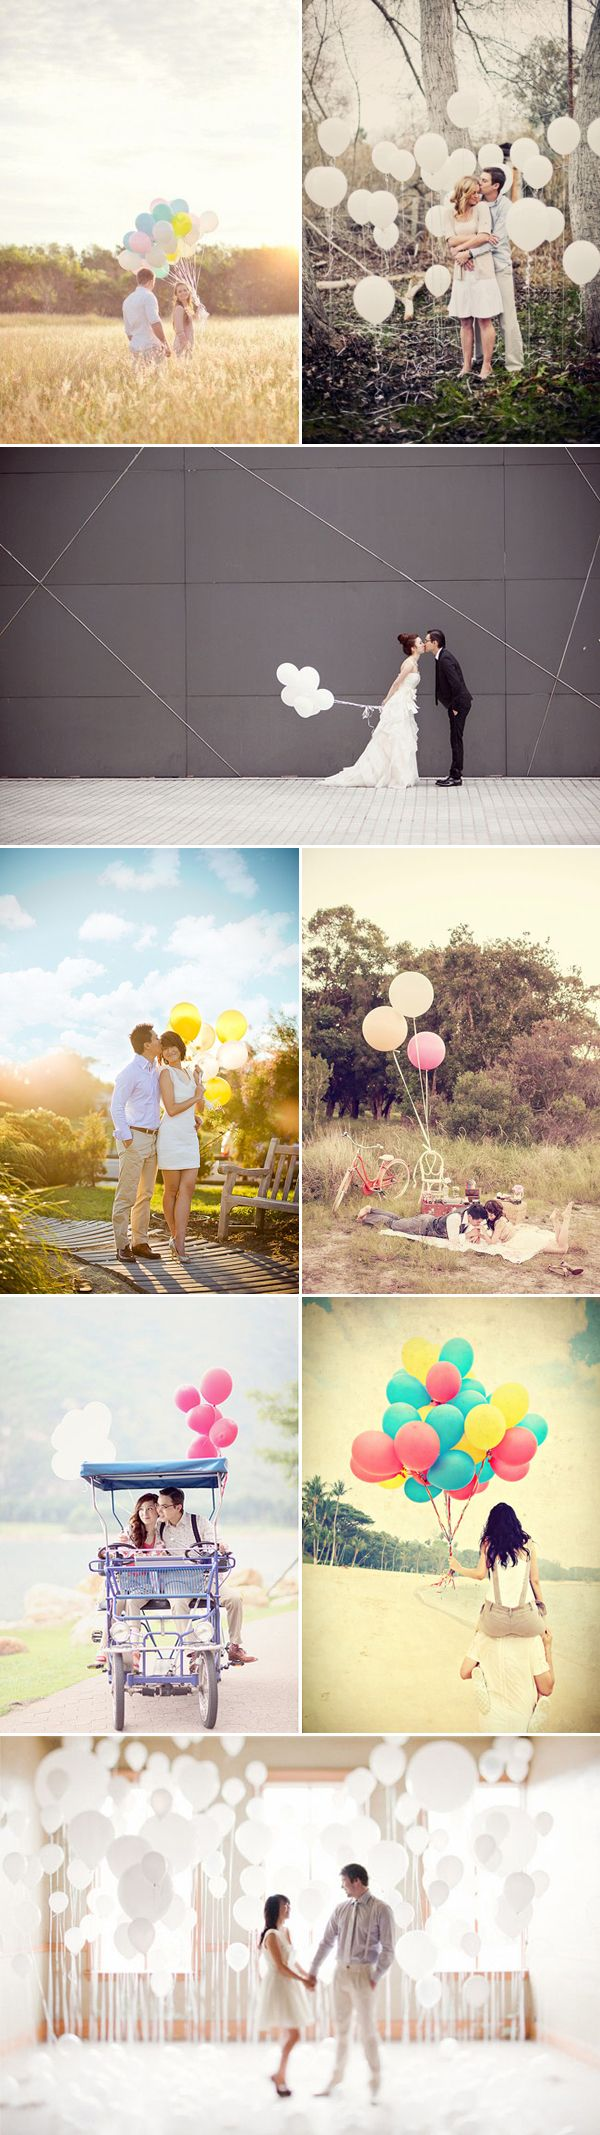 We love seeing different photographer's visions when incorporating balloons into engagement photos. Balloons make adorable props and backdrop, and it's also a great way to add pops of color. Fun, free-spirited, romantic, dreamy, and sweet, the possibilities are endless. Here are some ideas we absolutely adore. Get ready for some lovely inspiration! Large round …